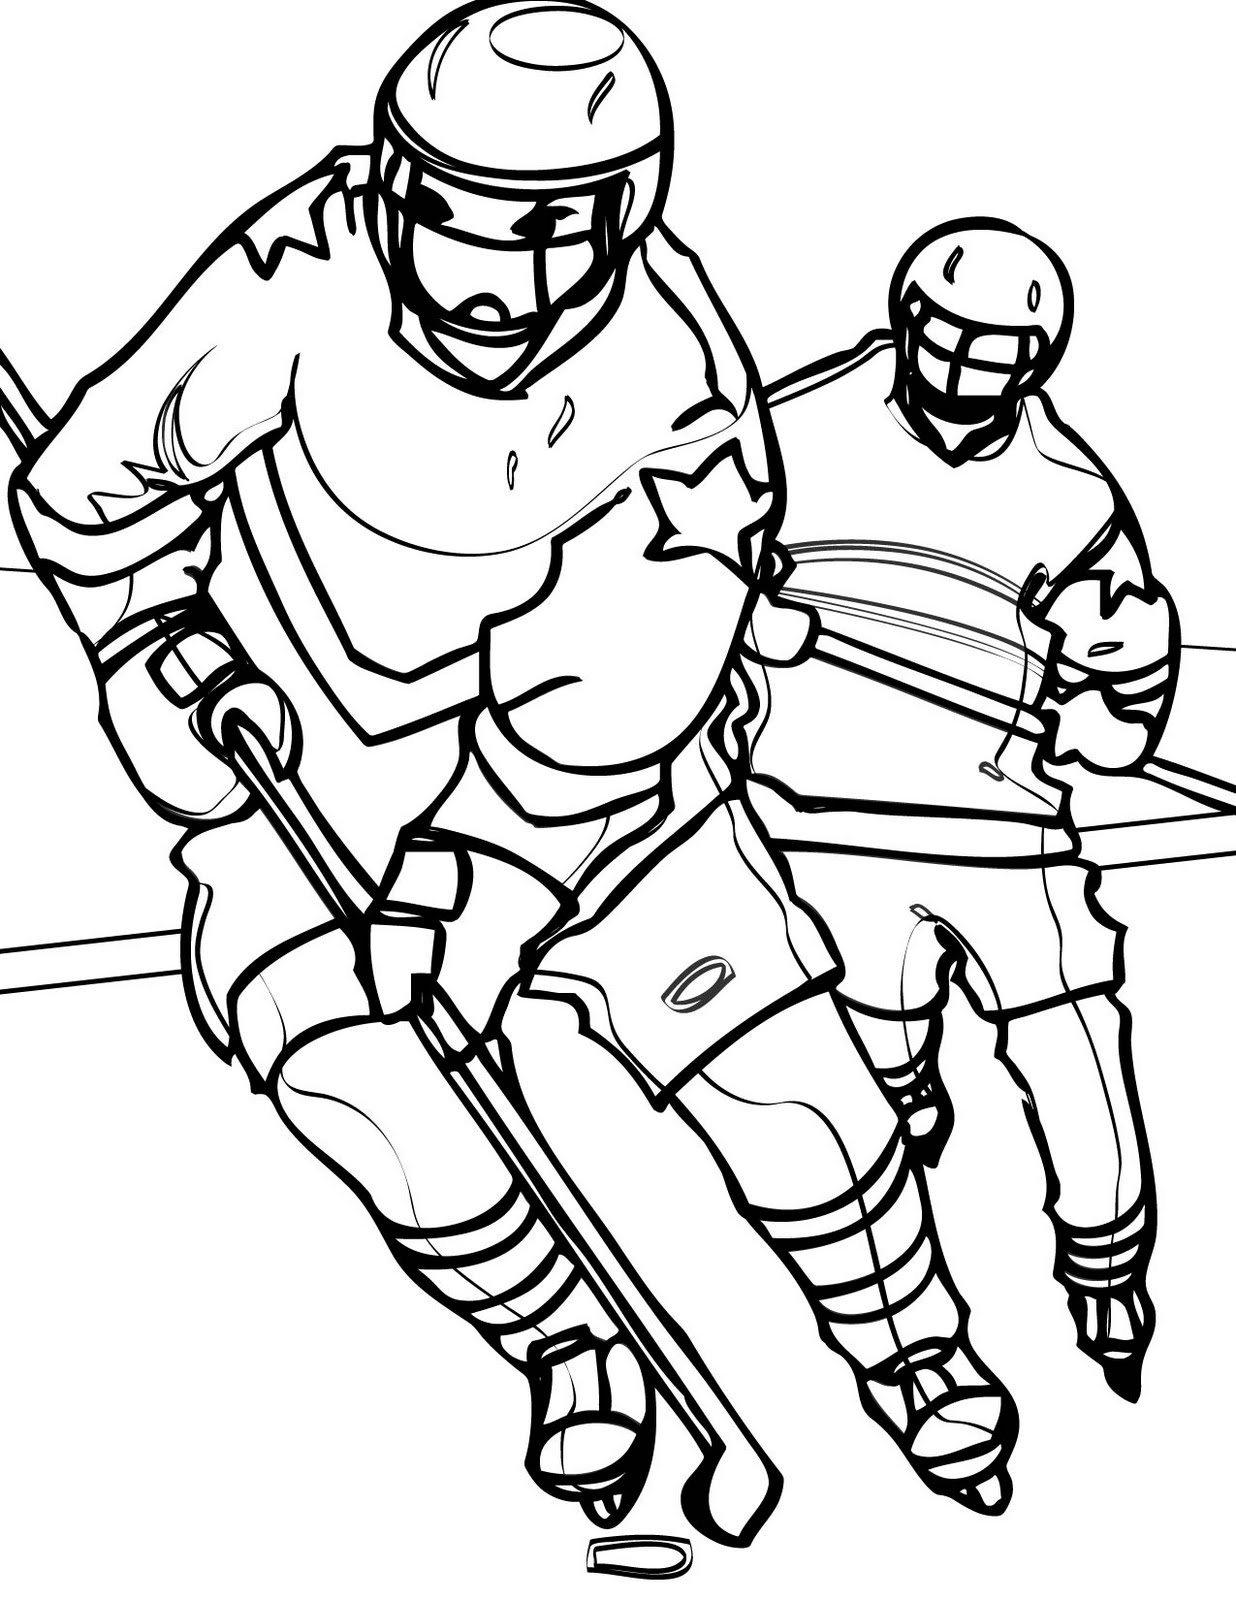 hockey coloring pages to print 16 hockey coloring pages free word pdf jpeg png pages hockey coloring to print